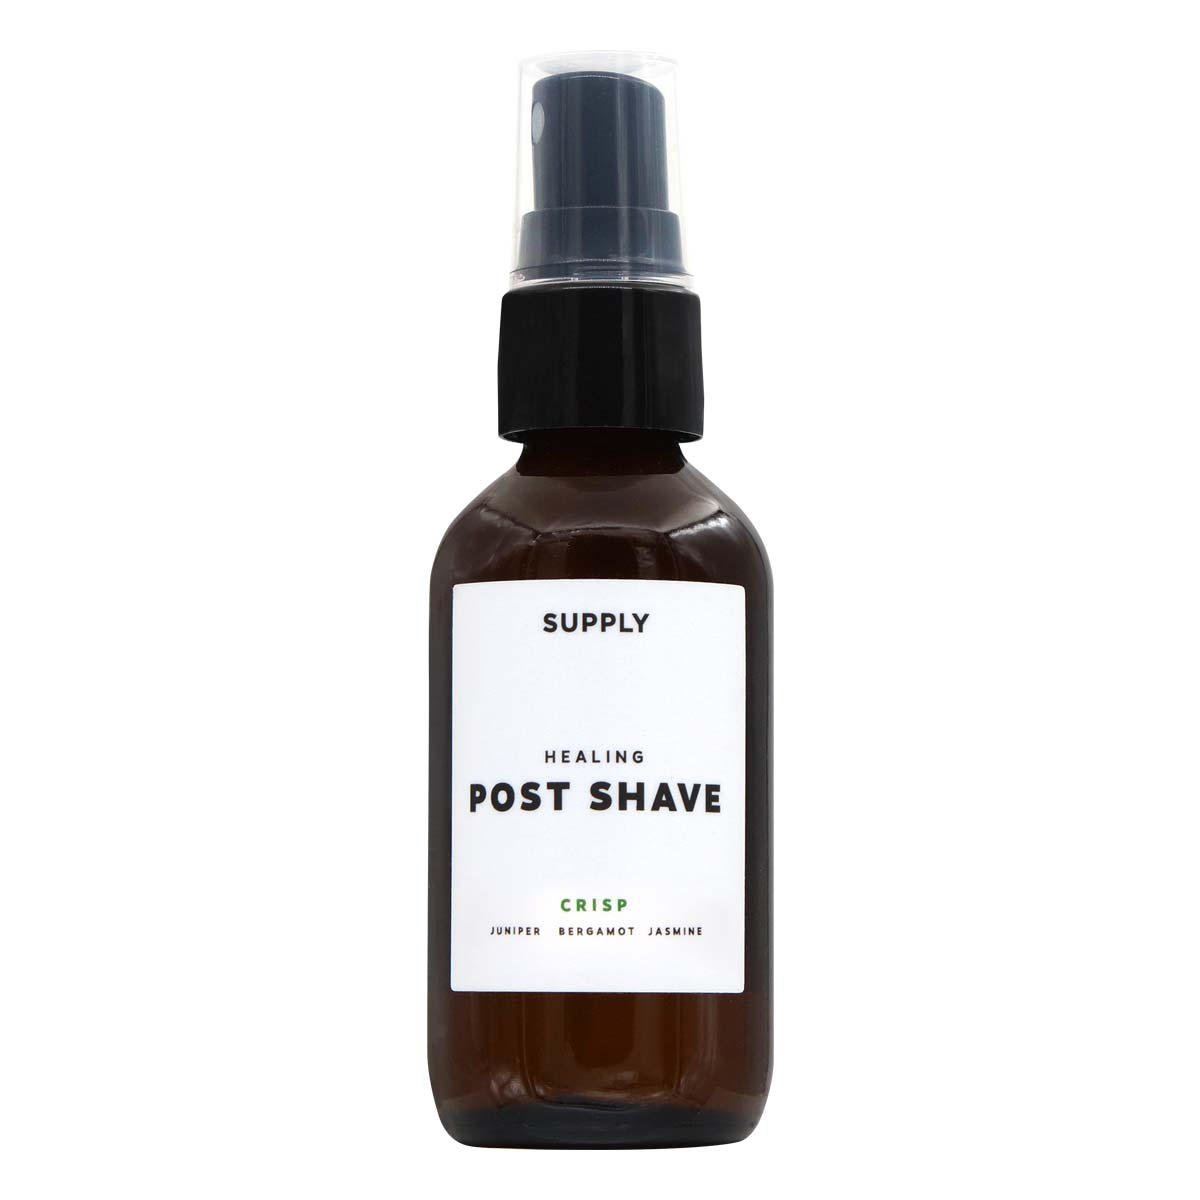 SUPPLY Healing Post Shave CRISP 2 oz